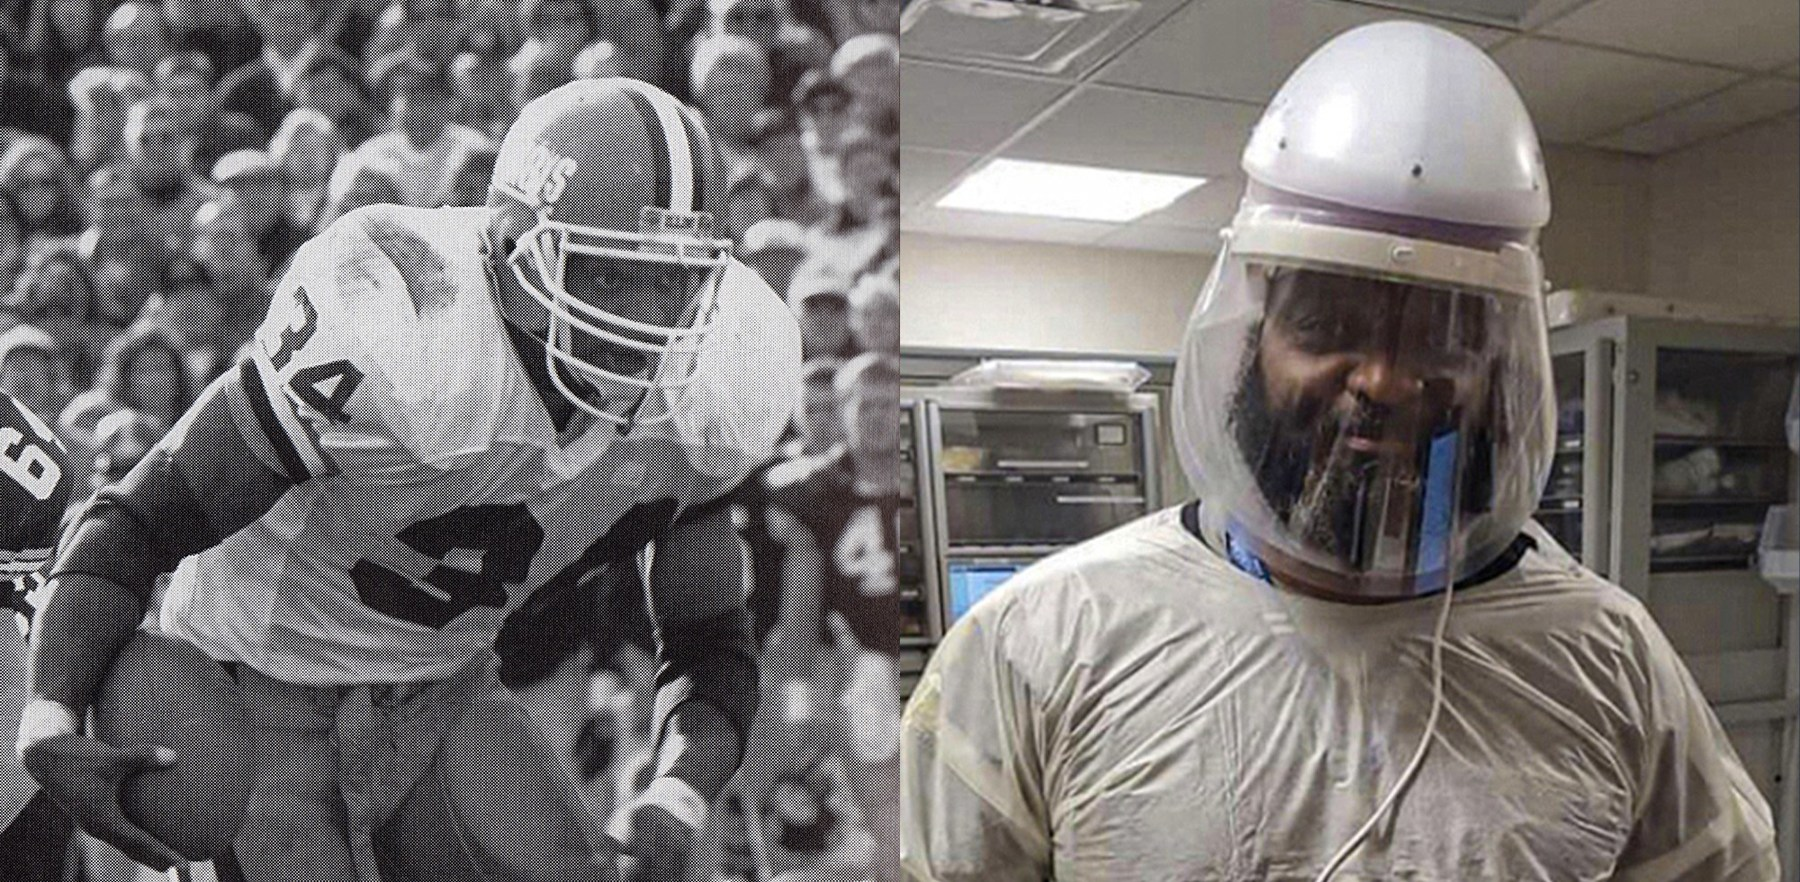 side-by-side images of Kameno Bell in football gear and in full PPE as an emergency room doctor